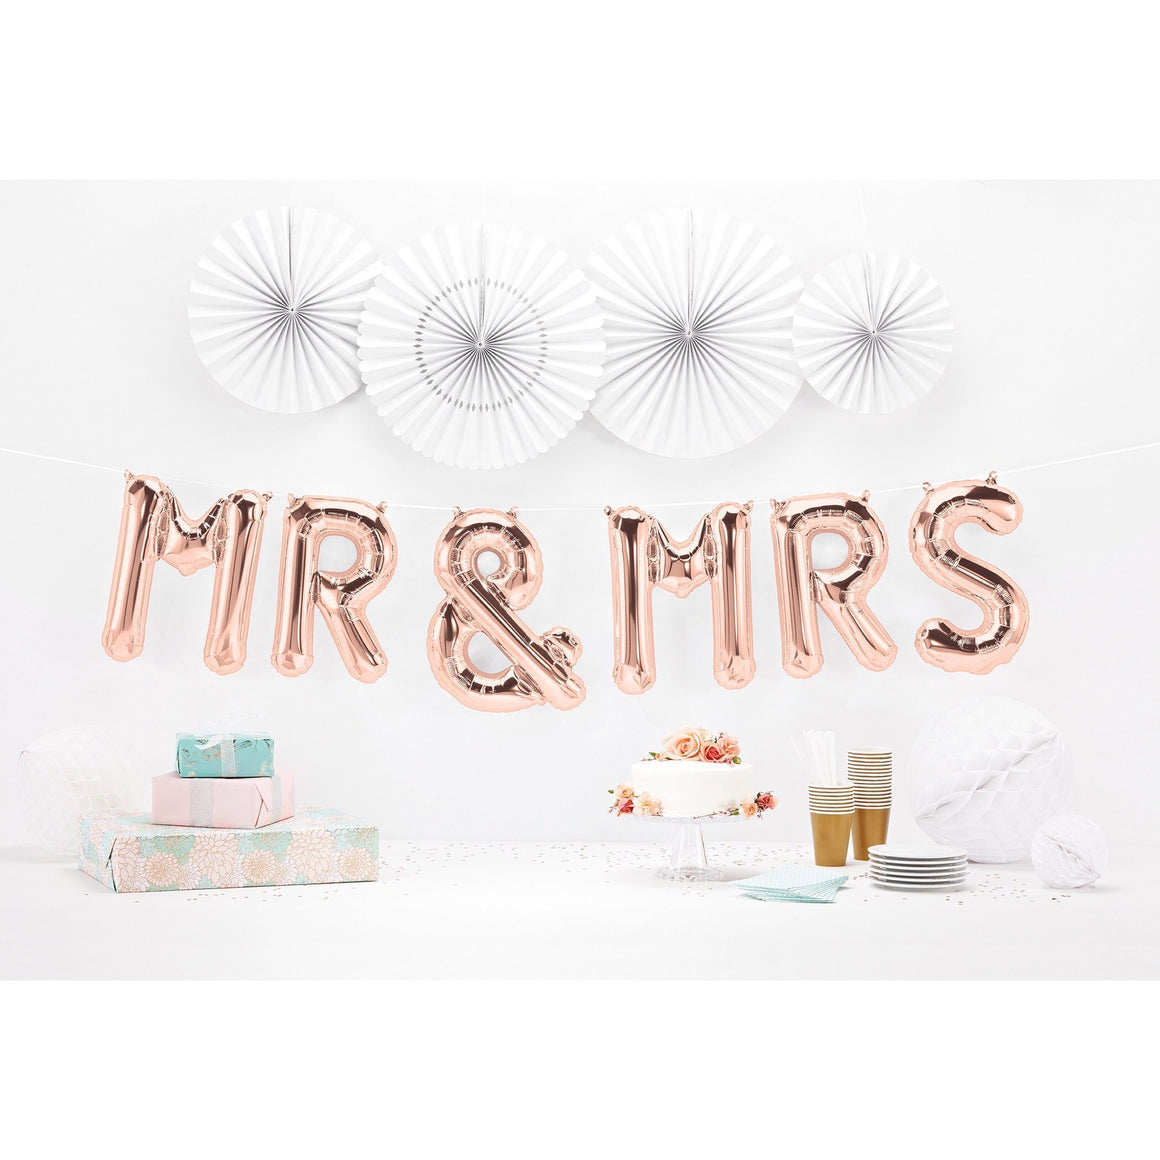 BALLOONS - ROSE GOLD MR & MRS LETTERS, Balloons, Northstar - Bon + Co. Party Studio